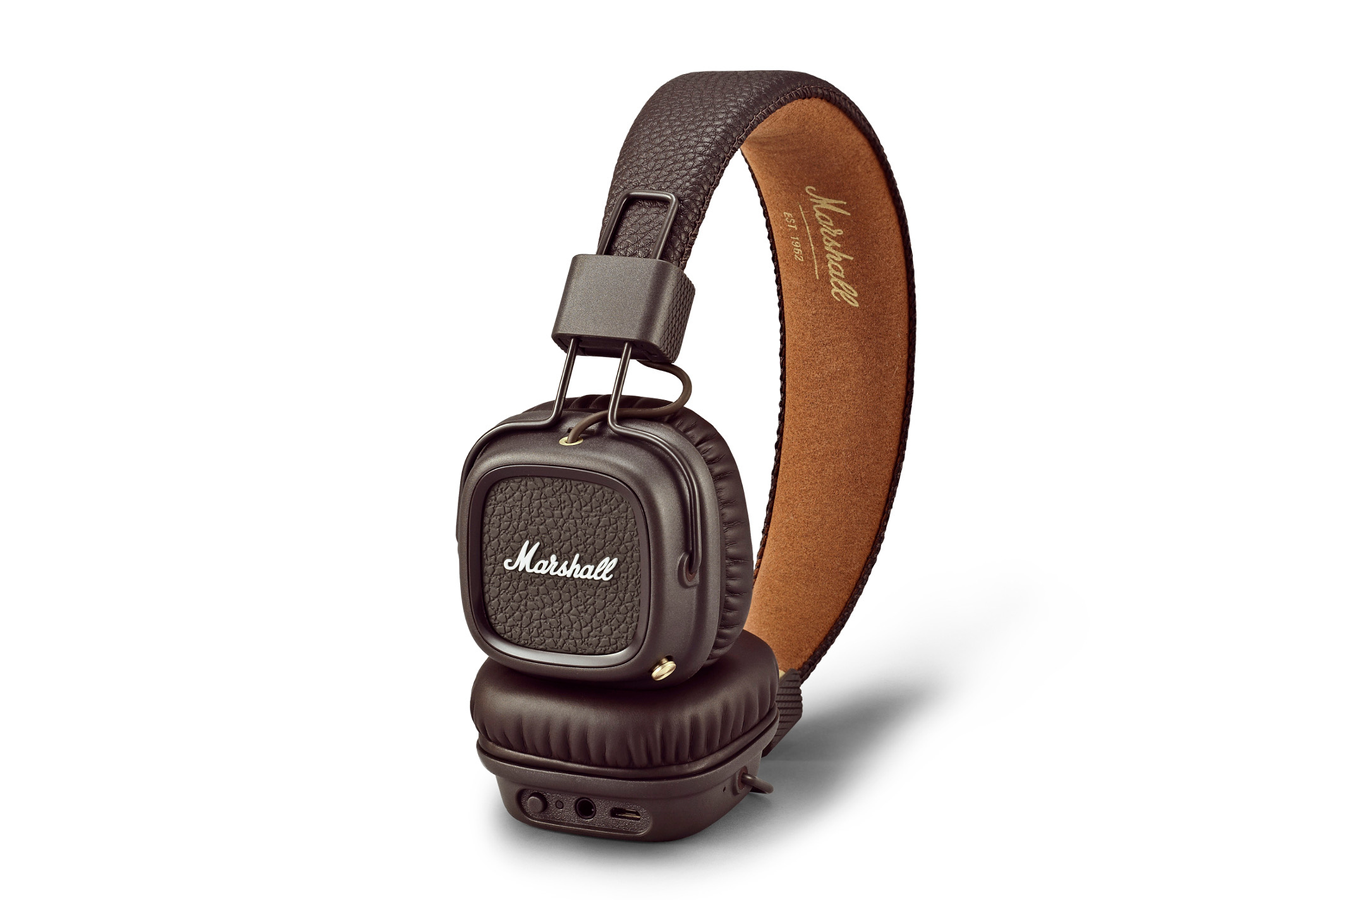 casque audio marshall major 2 bluetooth brown 4274687. Black Bedroom Furniture Sets. Home Design Ideas